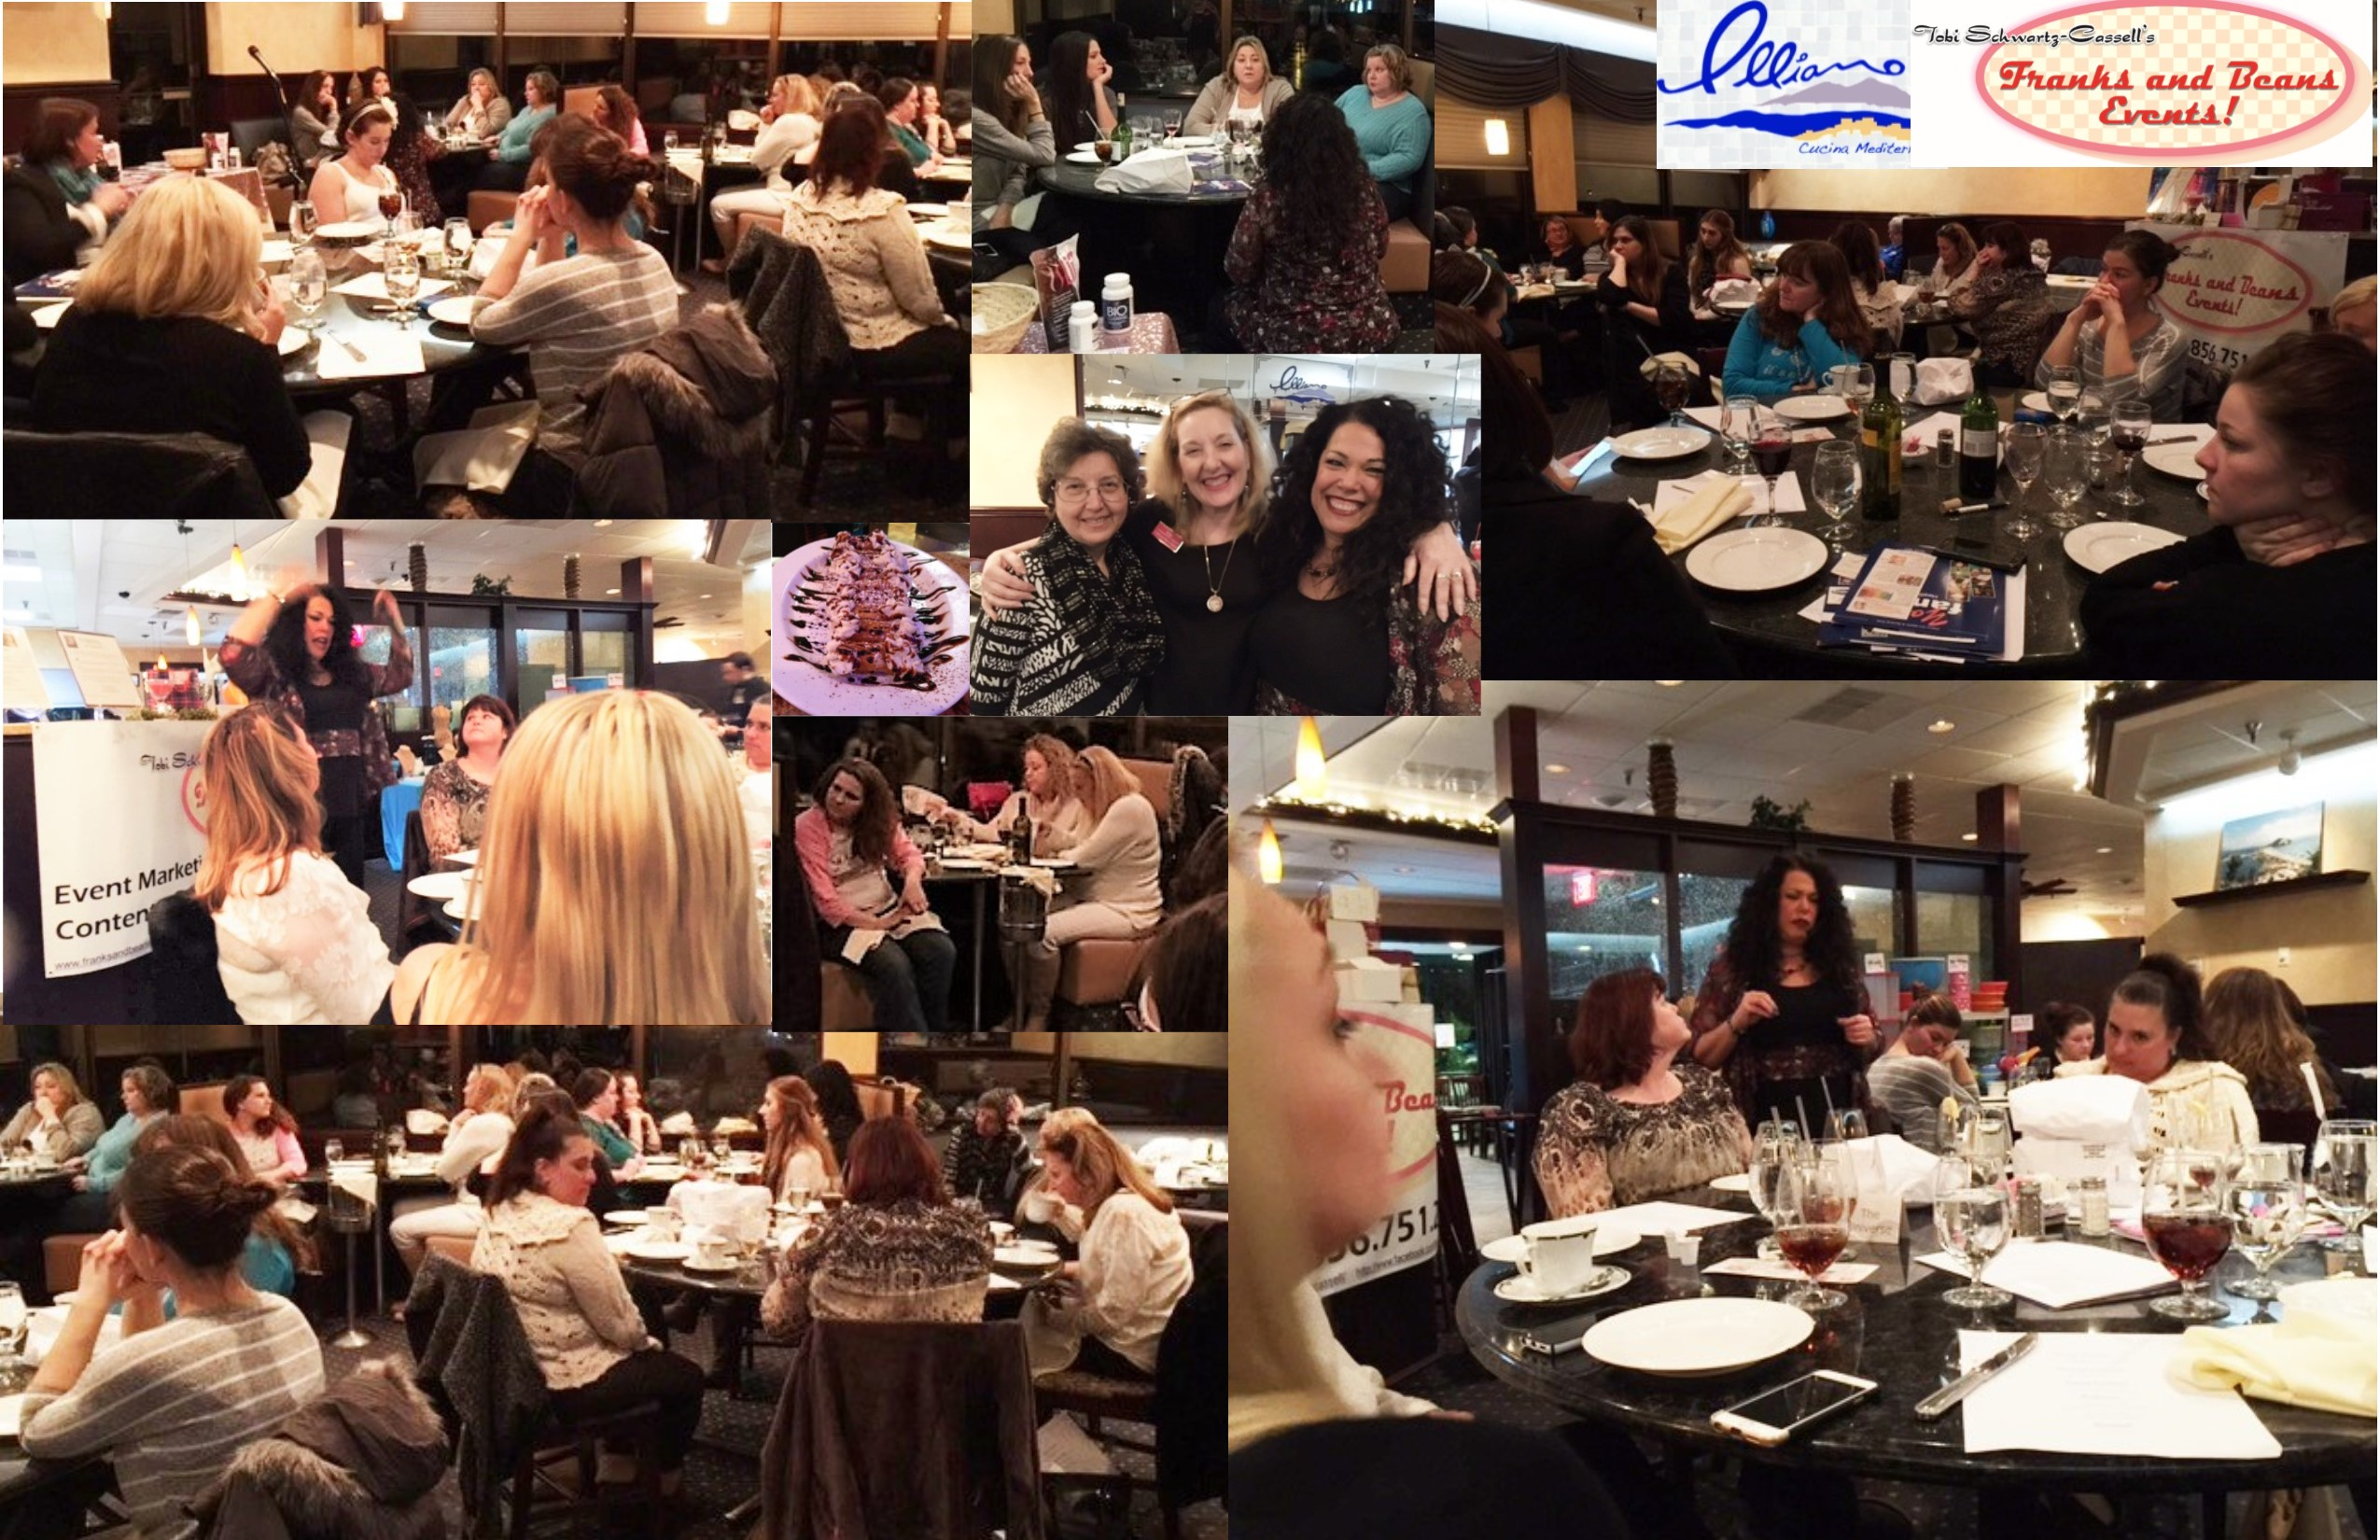 Another fun, yet healing evening with Rhonda. And the dinner at Illiano's was, as it always is, outstanding. We had homemade cannoli for dessert, too. :)